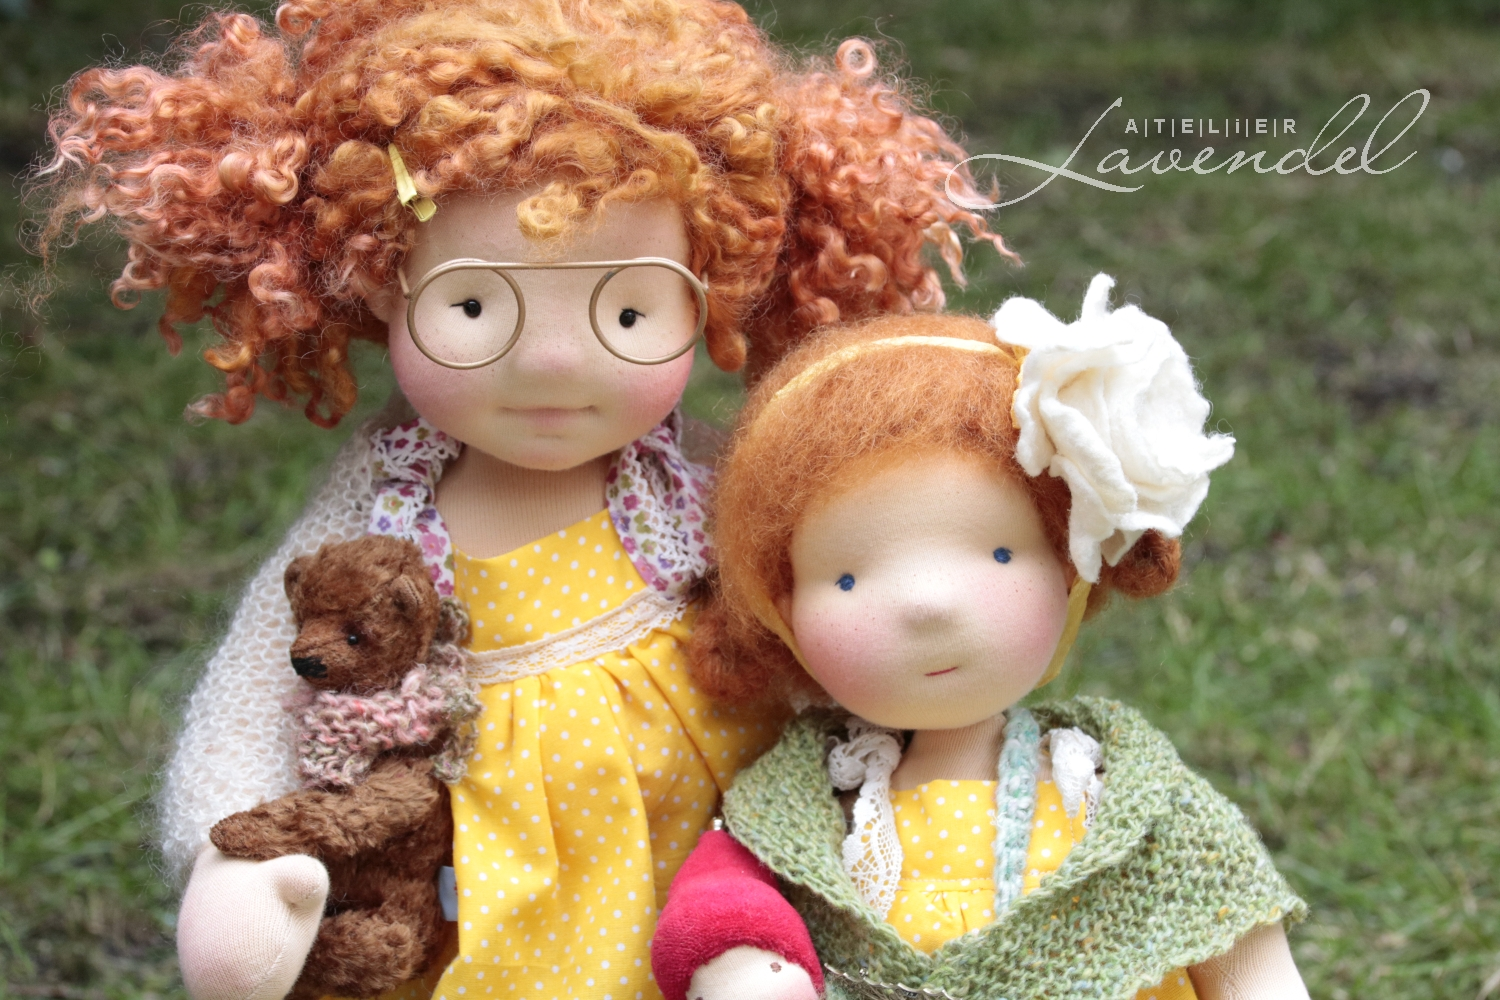 Atelier Lavendel dolls: Last preparations to be done before the European Waldorf Doll Seminar starts. Waldorf inspired dolls. handmade in Germany.